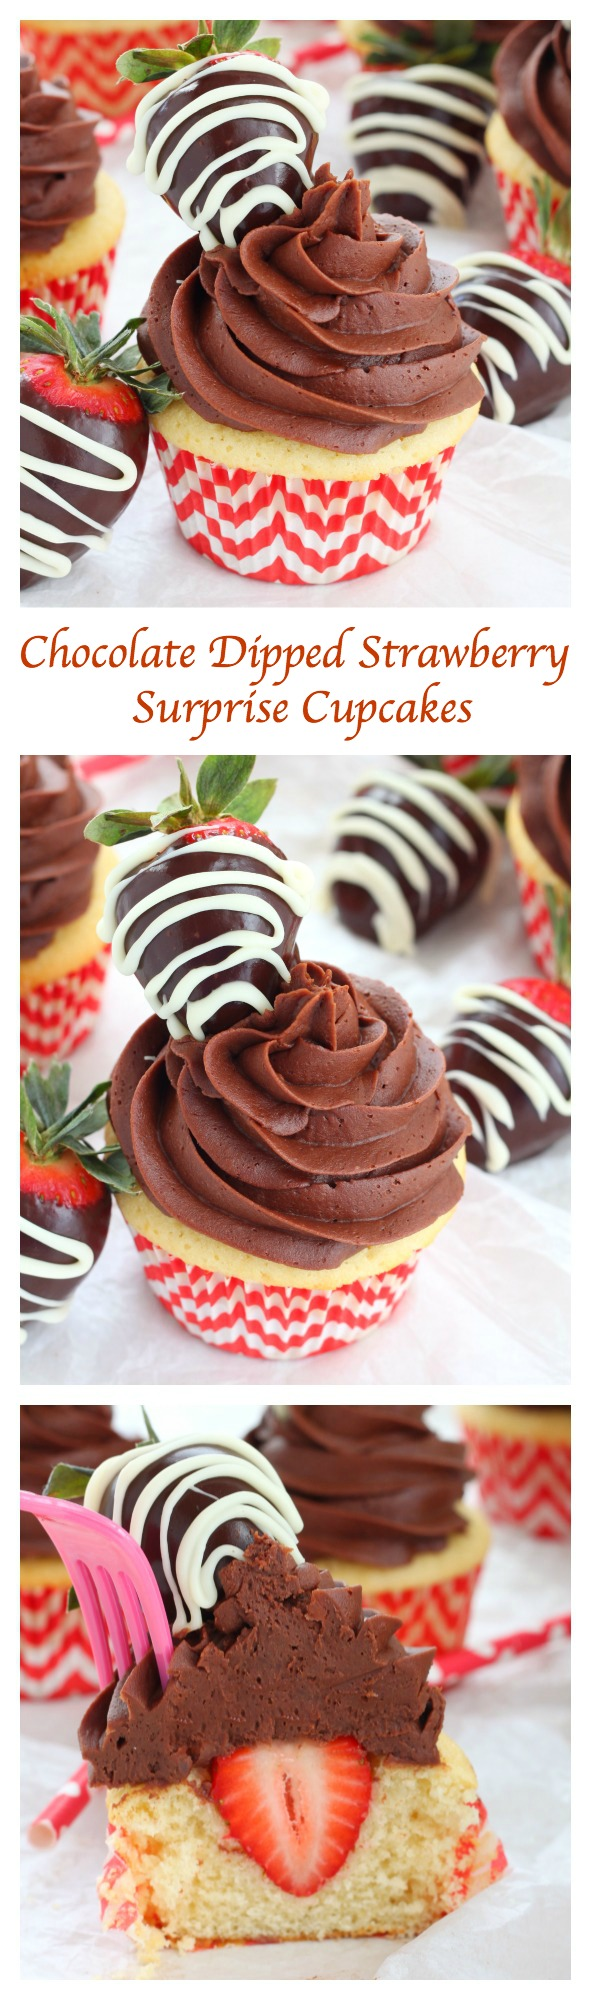 ... these chocolate dipped strawberry surprise cupcakes, you may also like